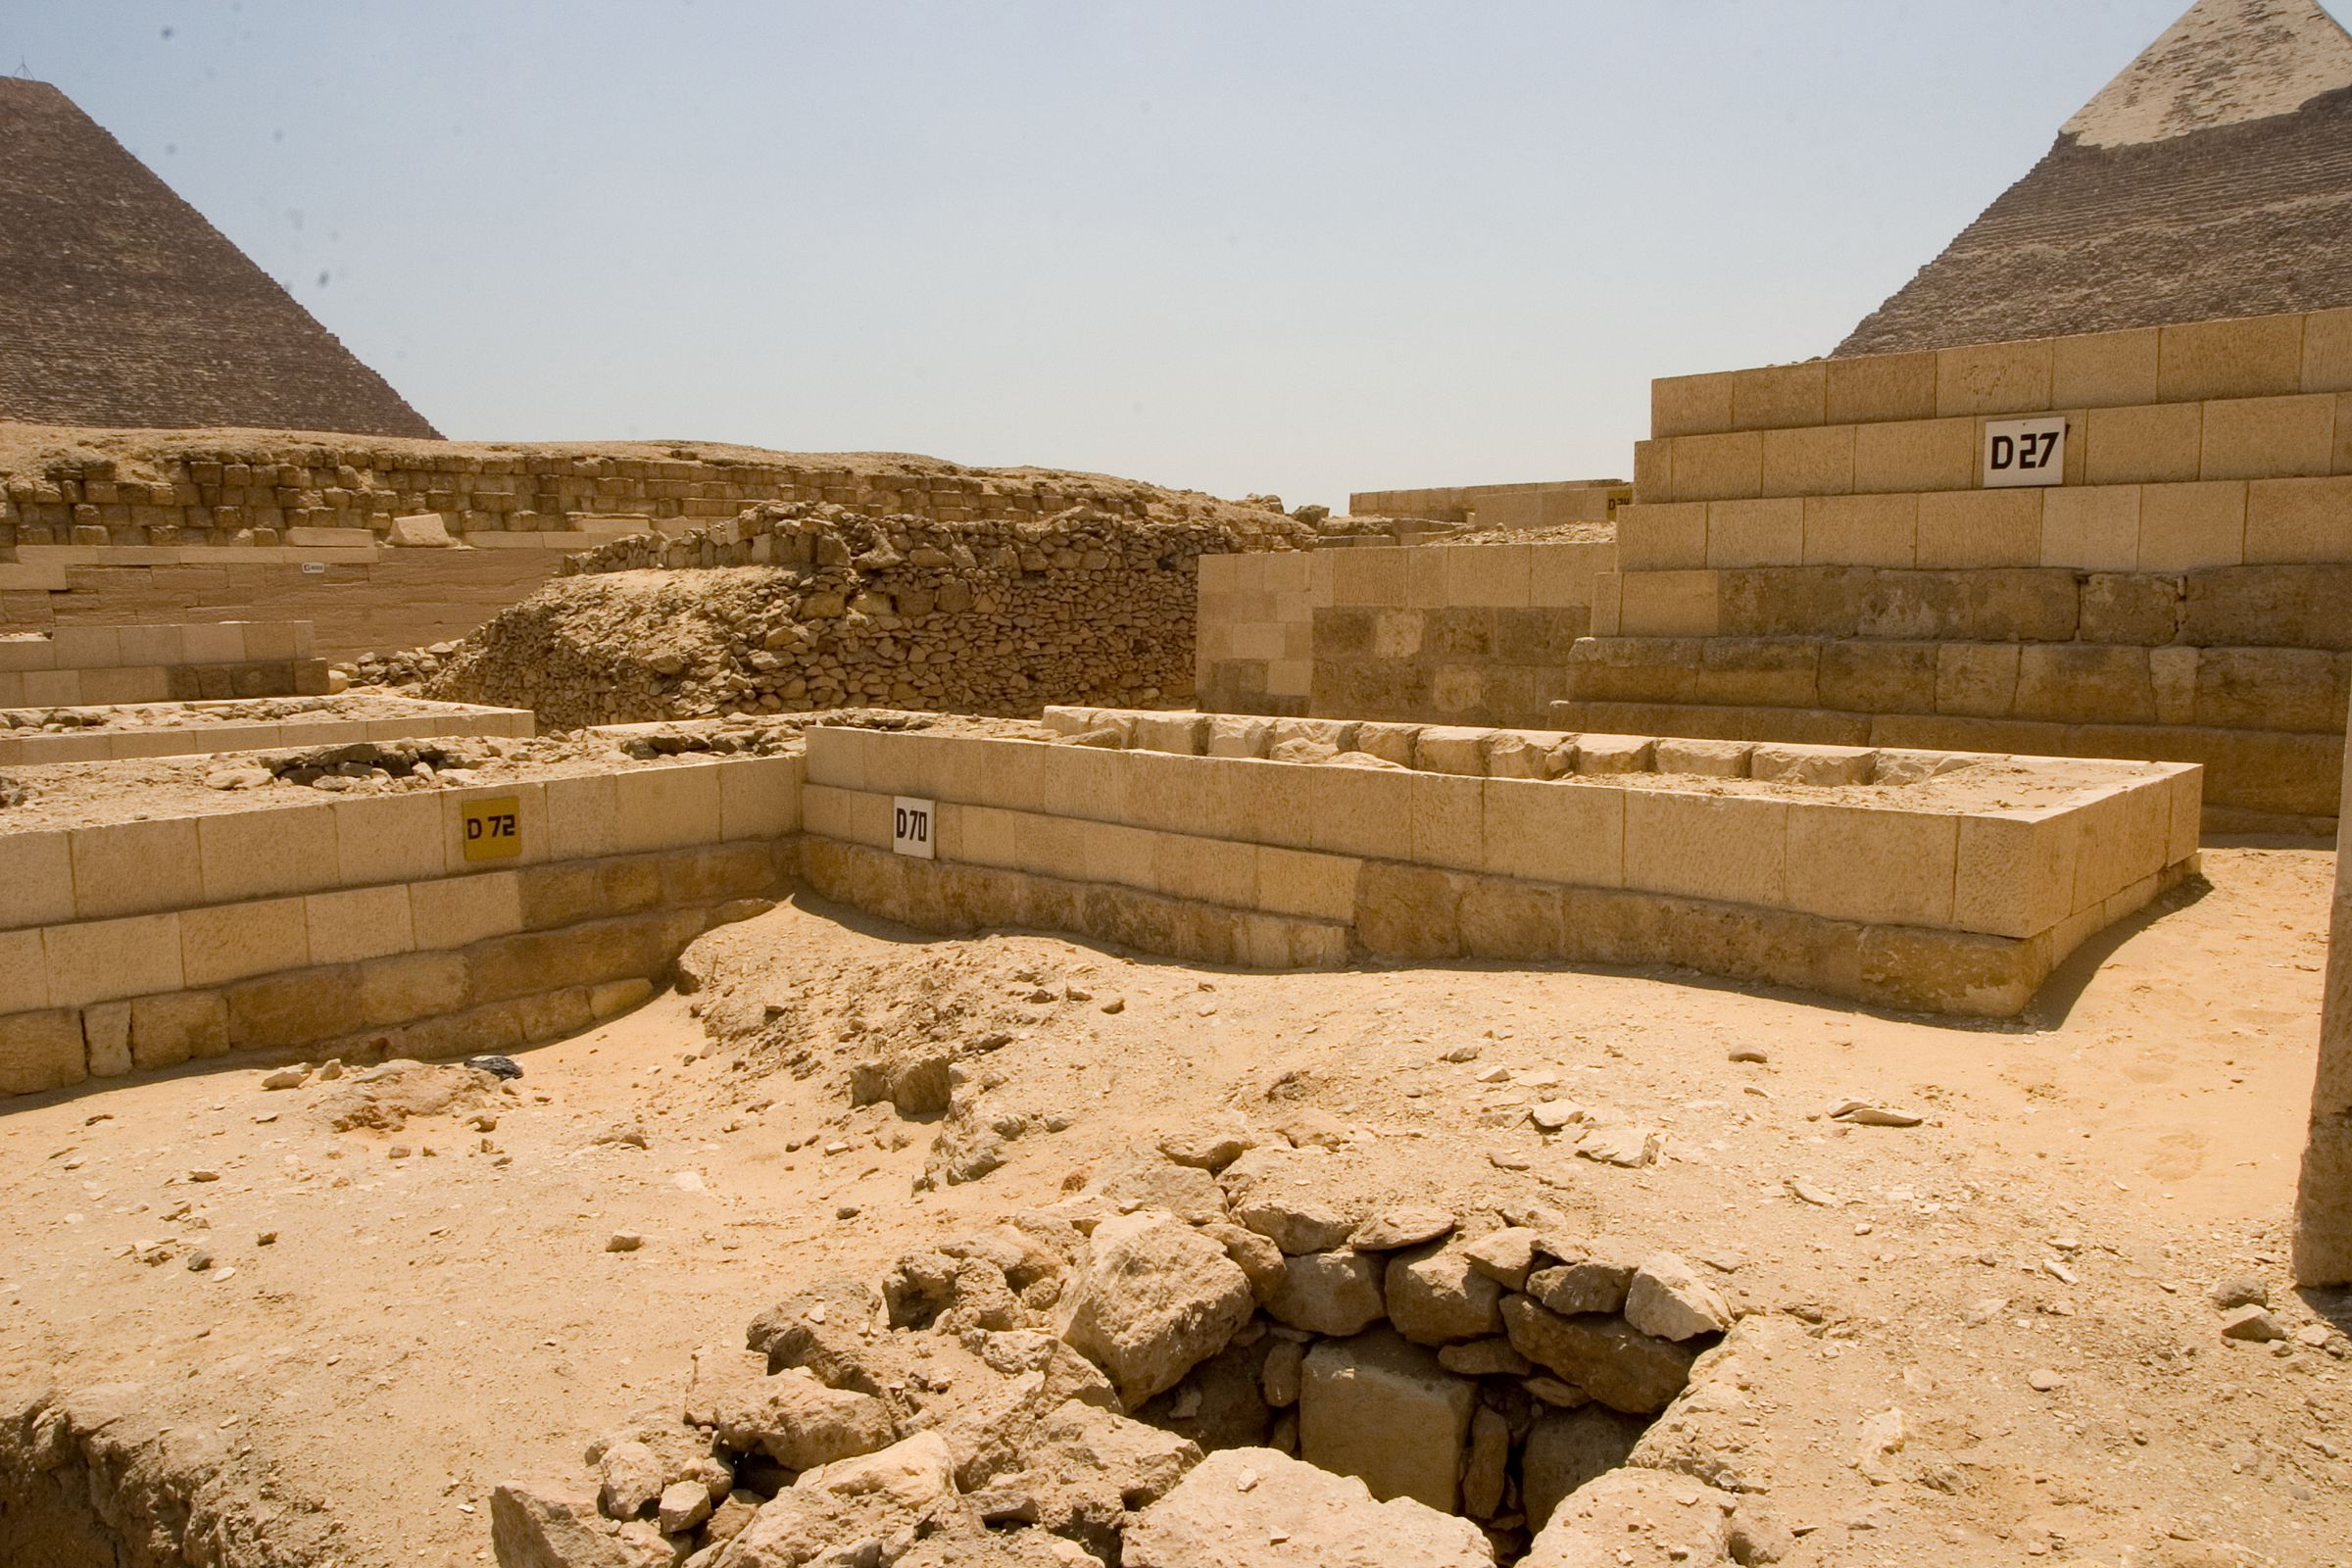 Western Cemetery: Site: Giza; View: D 72, D 70, D 27